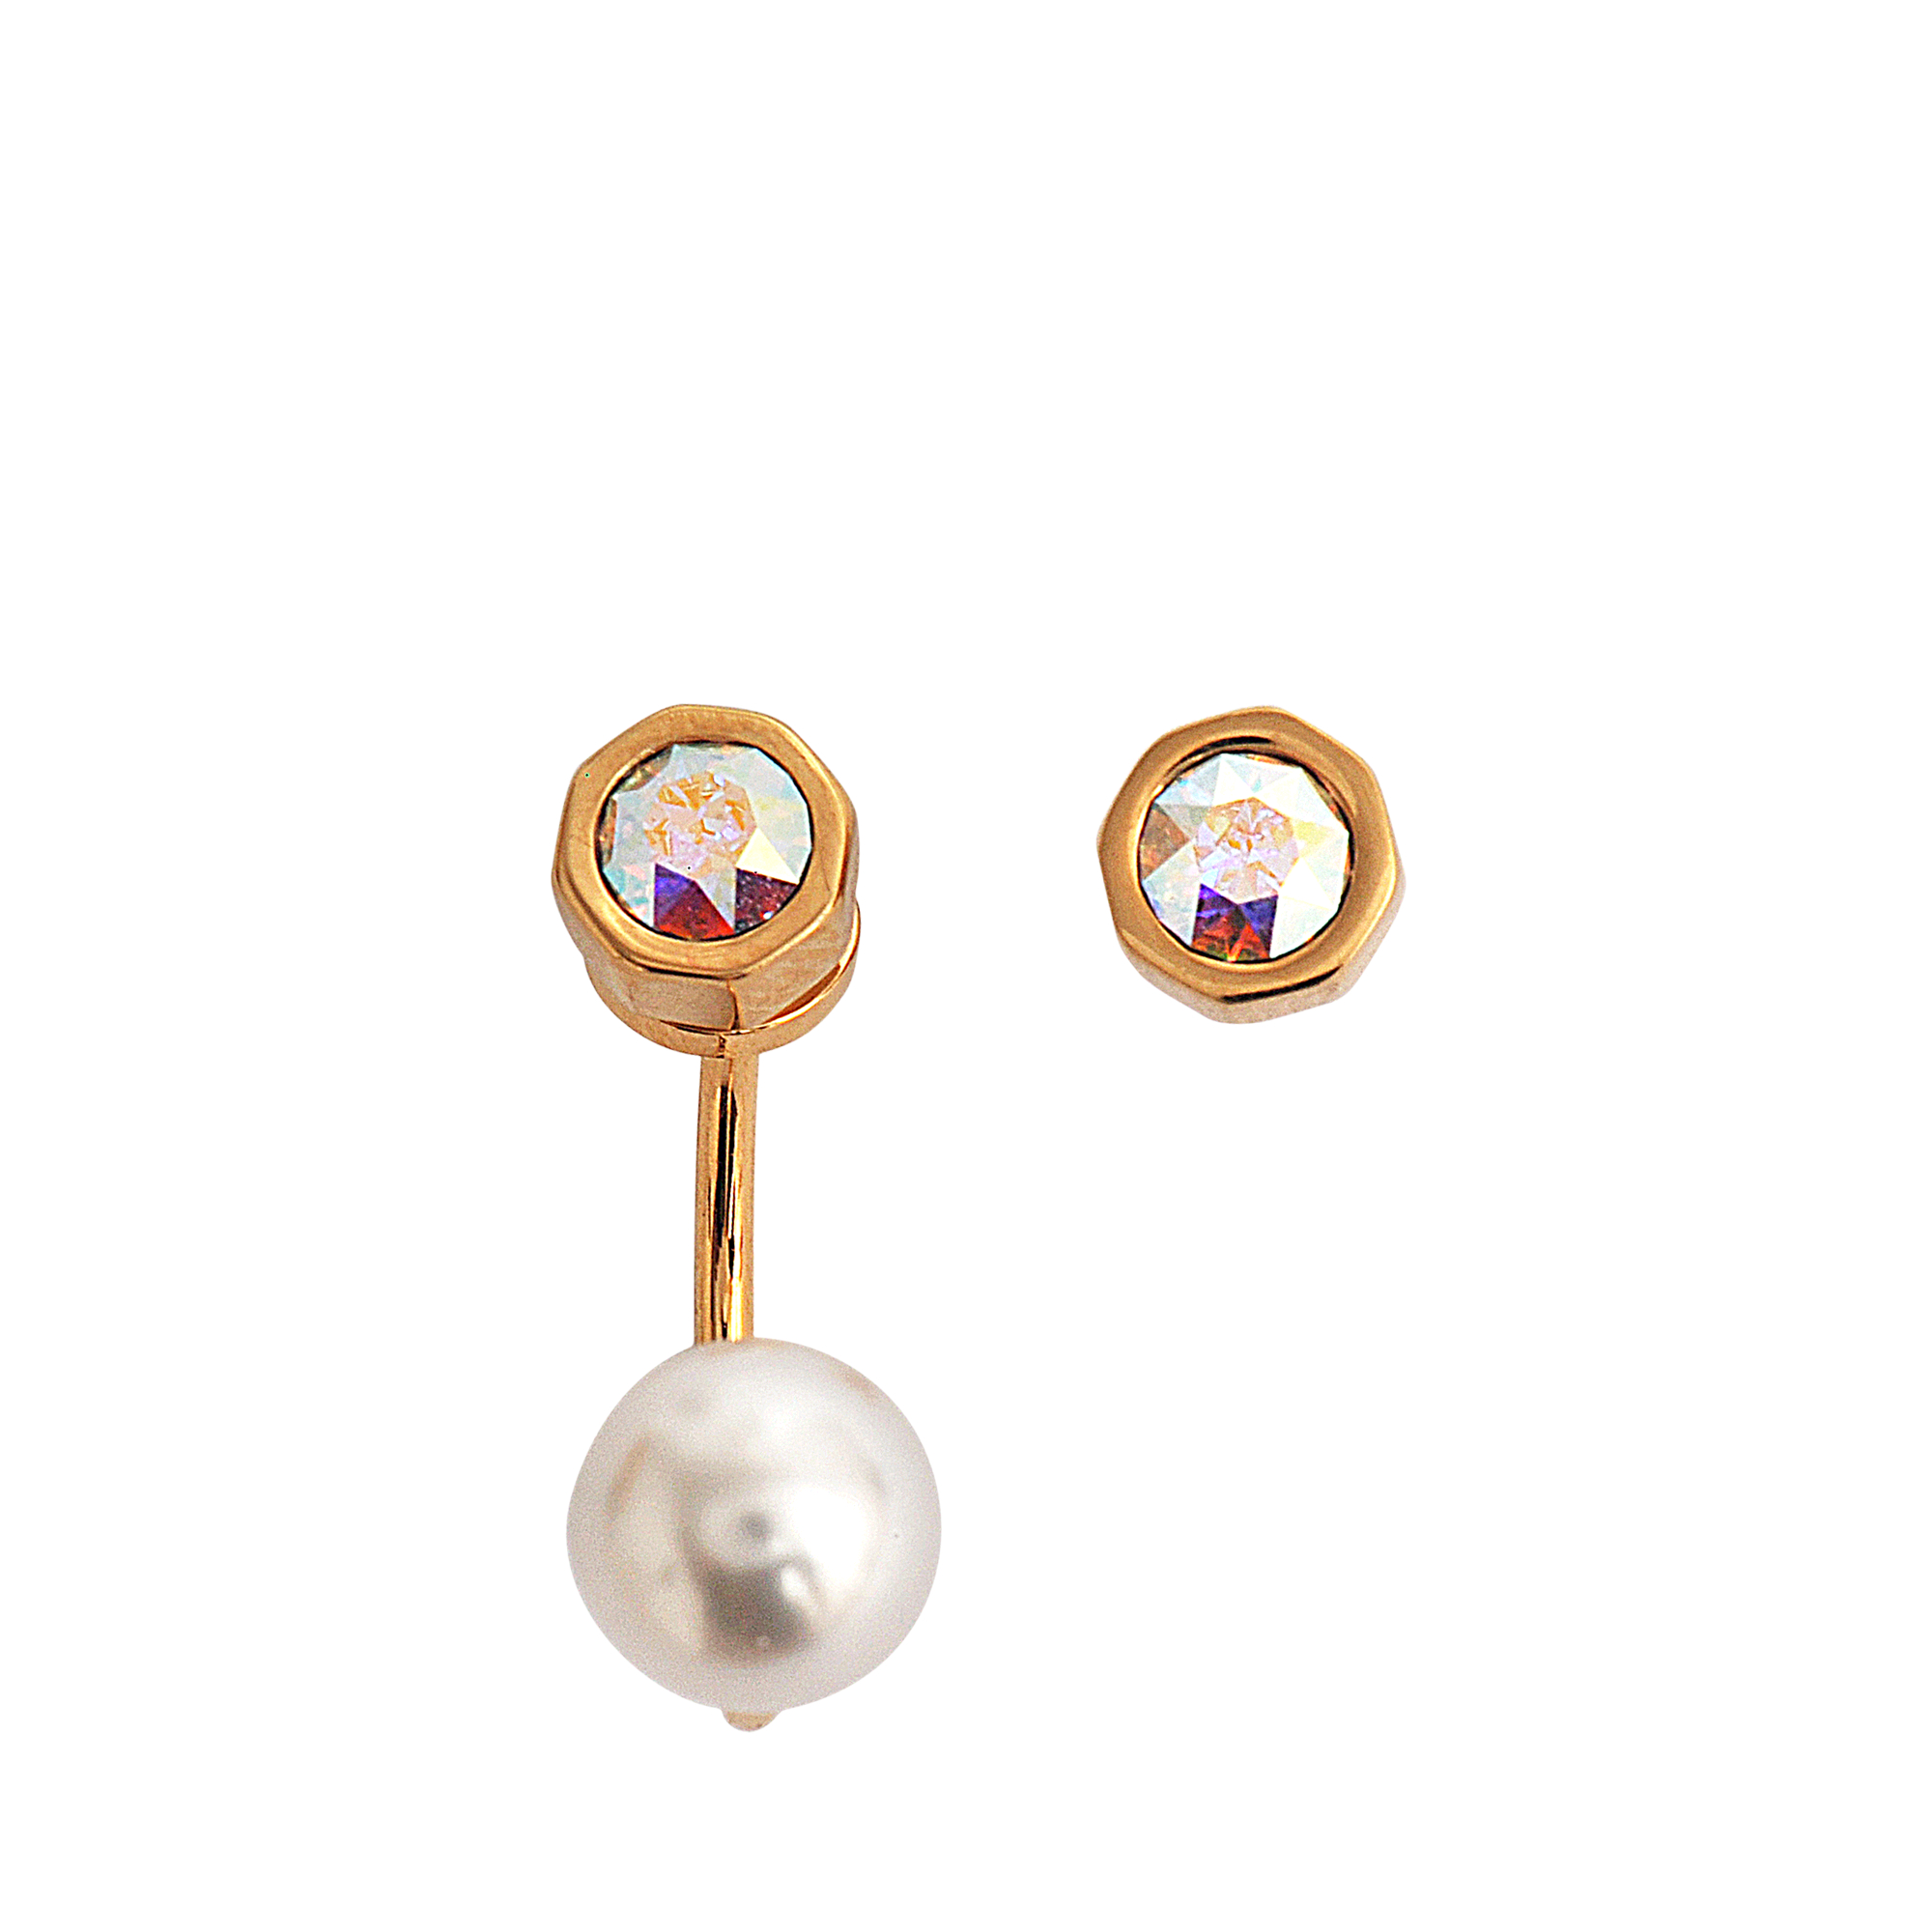 francesca maria normal gallery pepe earrings asymmetric metallic in jewelry lyst none product